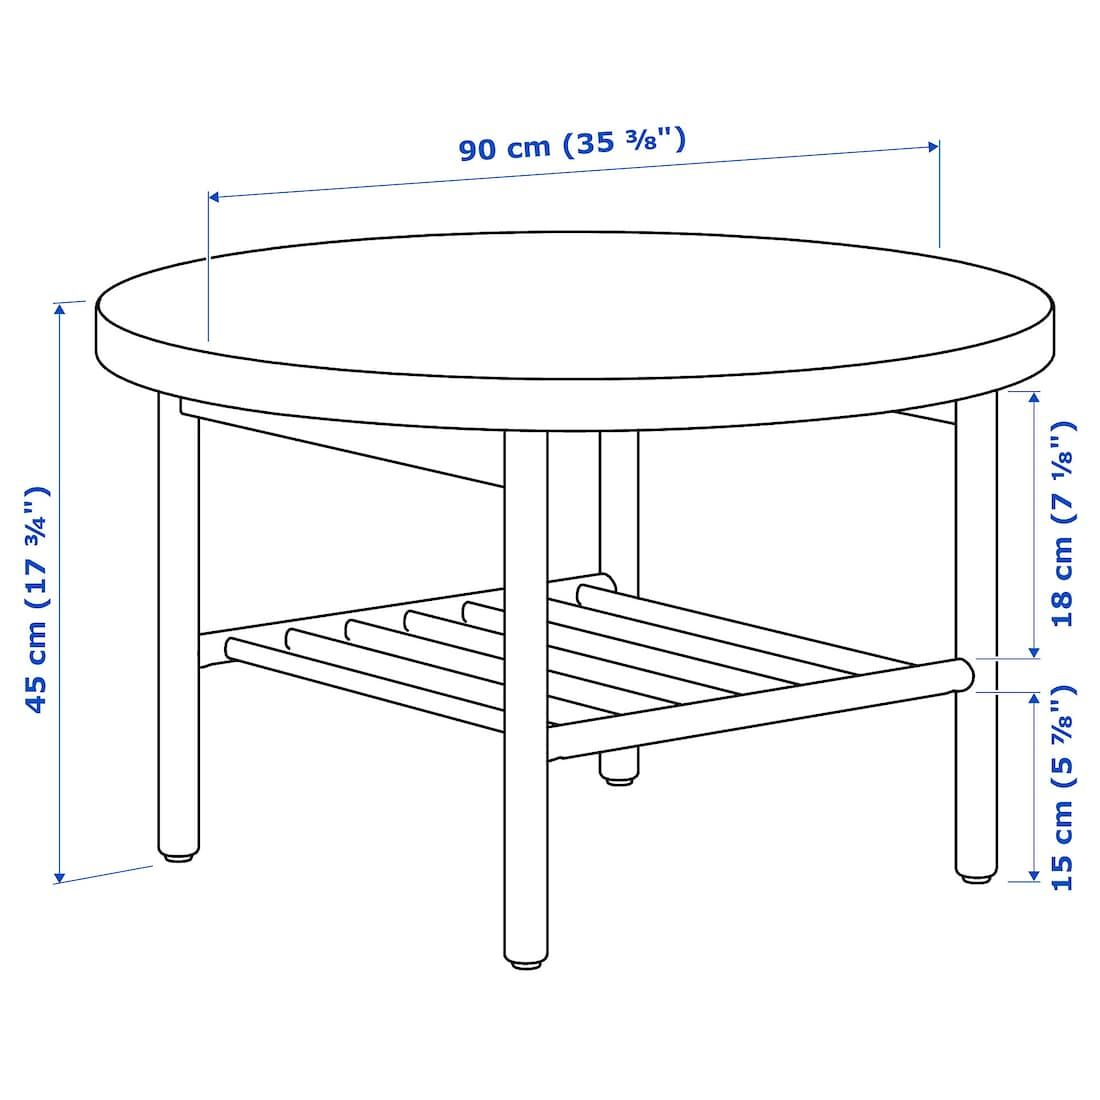 Listerby Coffee Table White Stained Oak 35 3 8 Ikea Coffee Table White Coffee Table Brown Coffee Table [ 1100 x 1100 Pixel ]